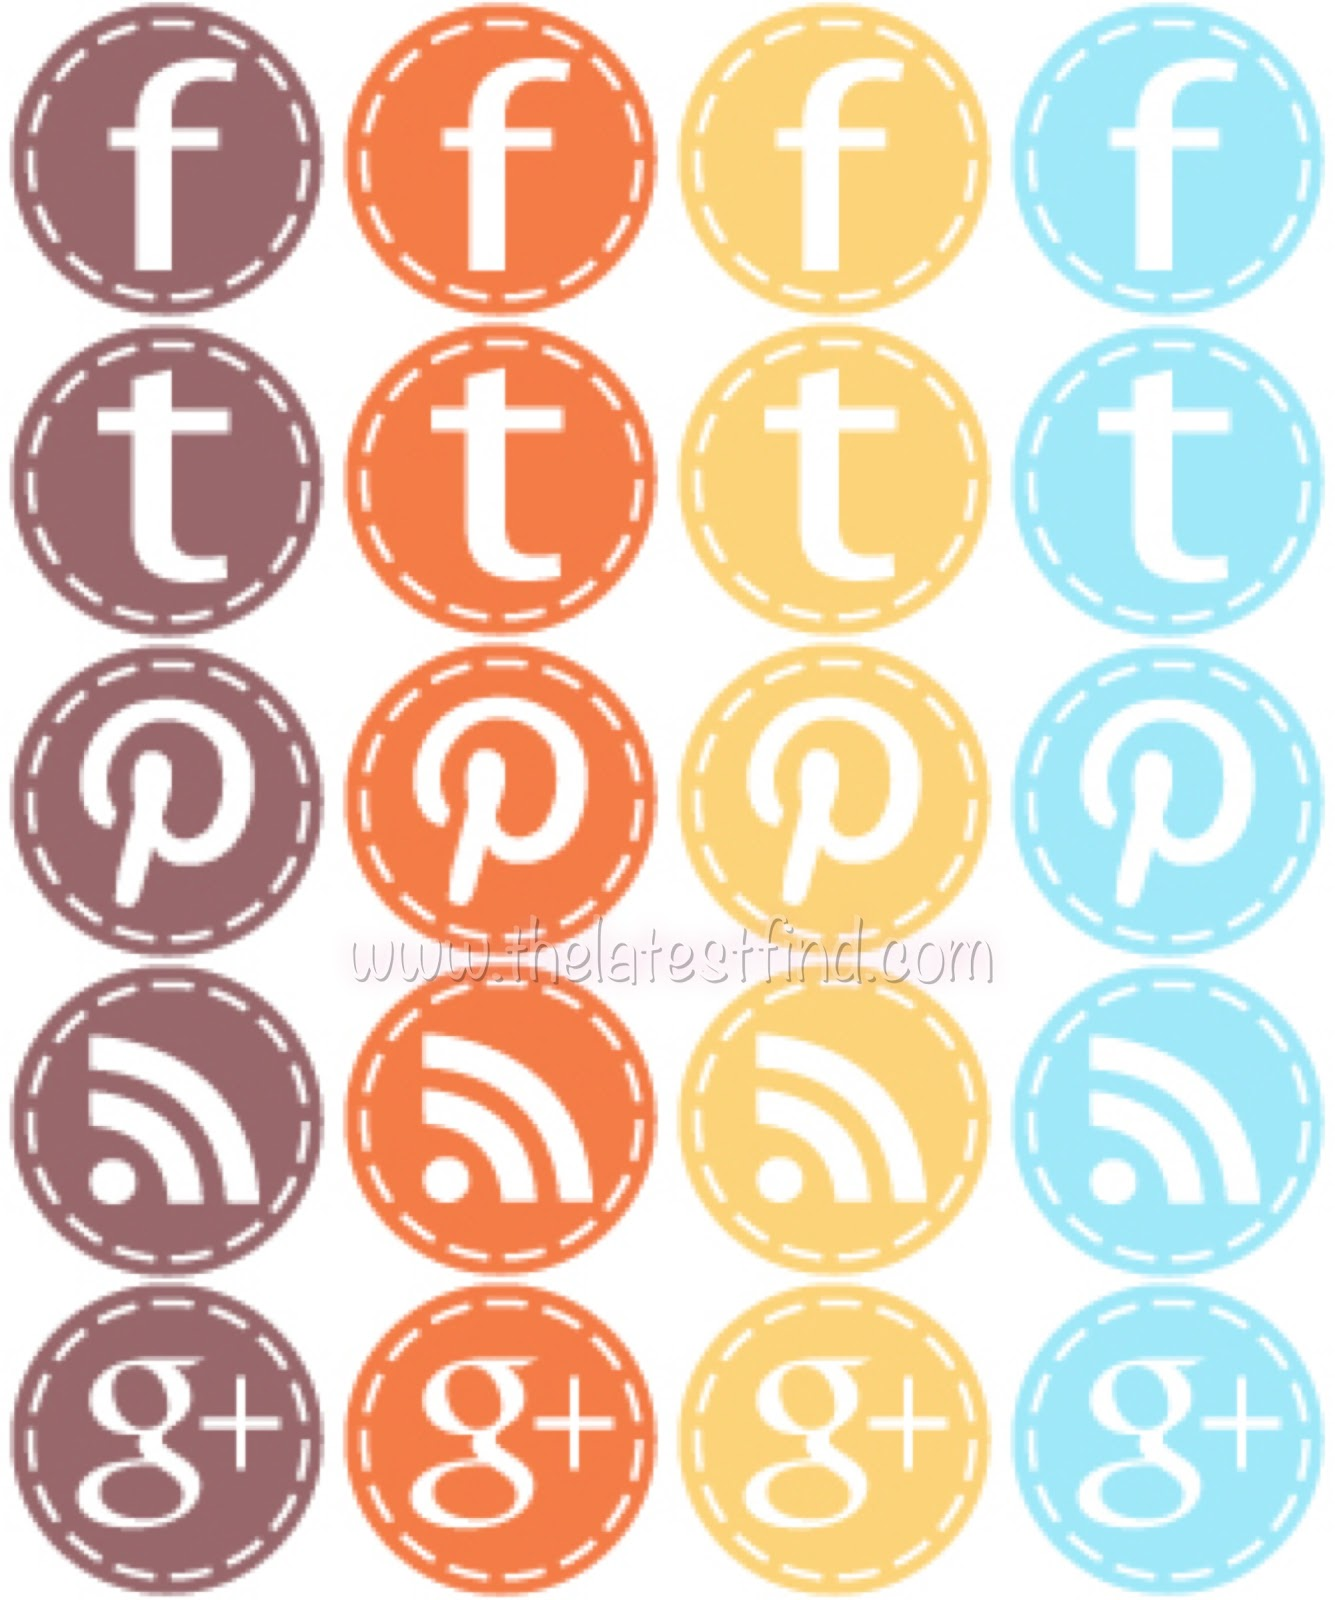 how to make social media icons in color